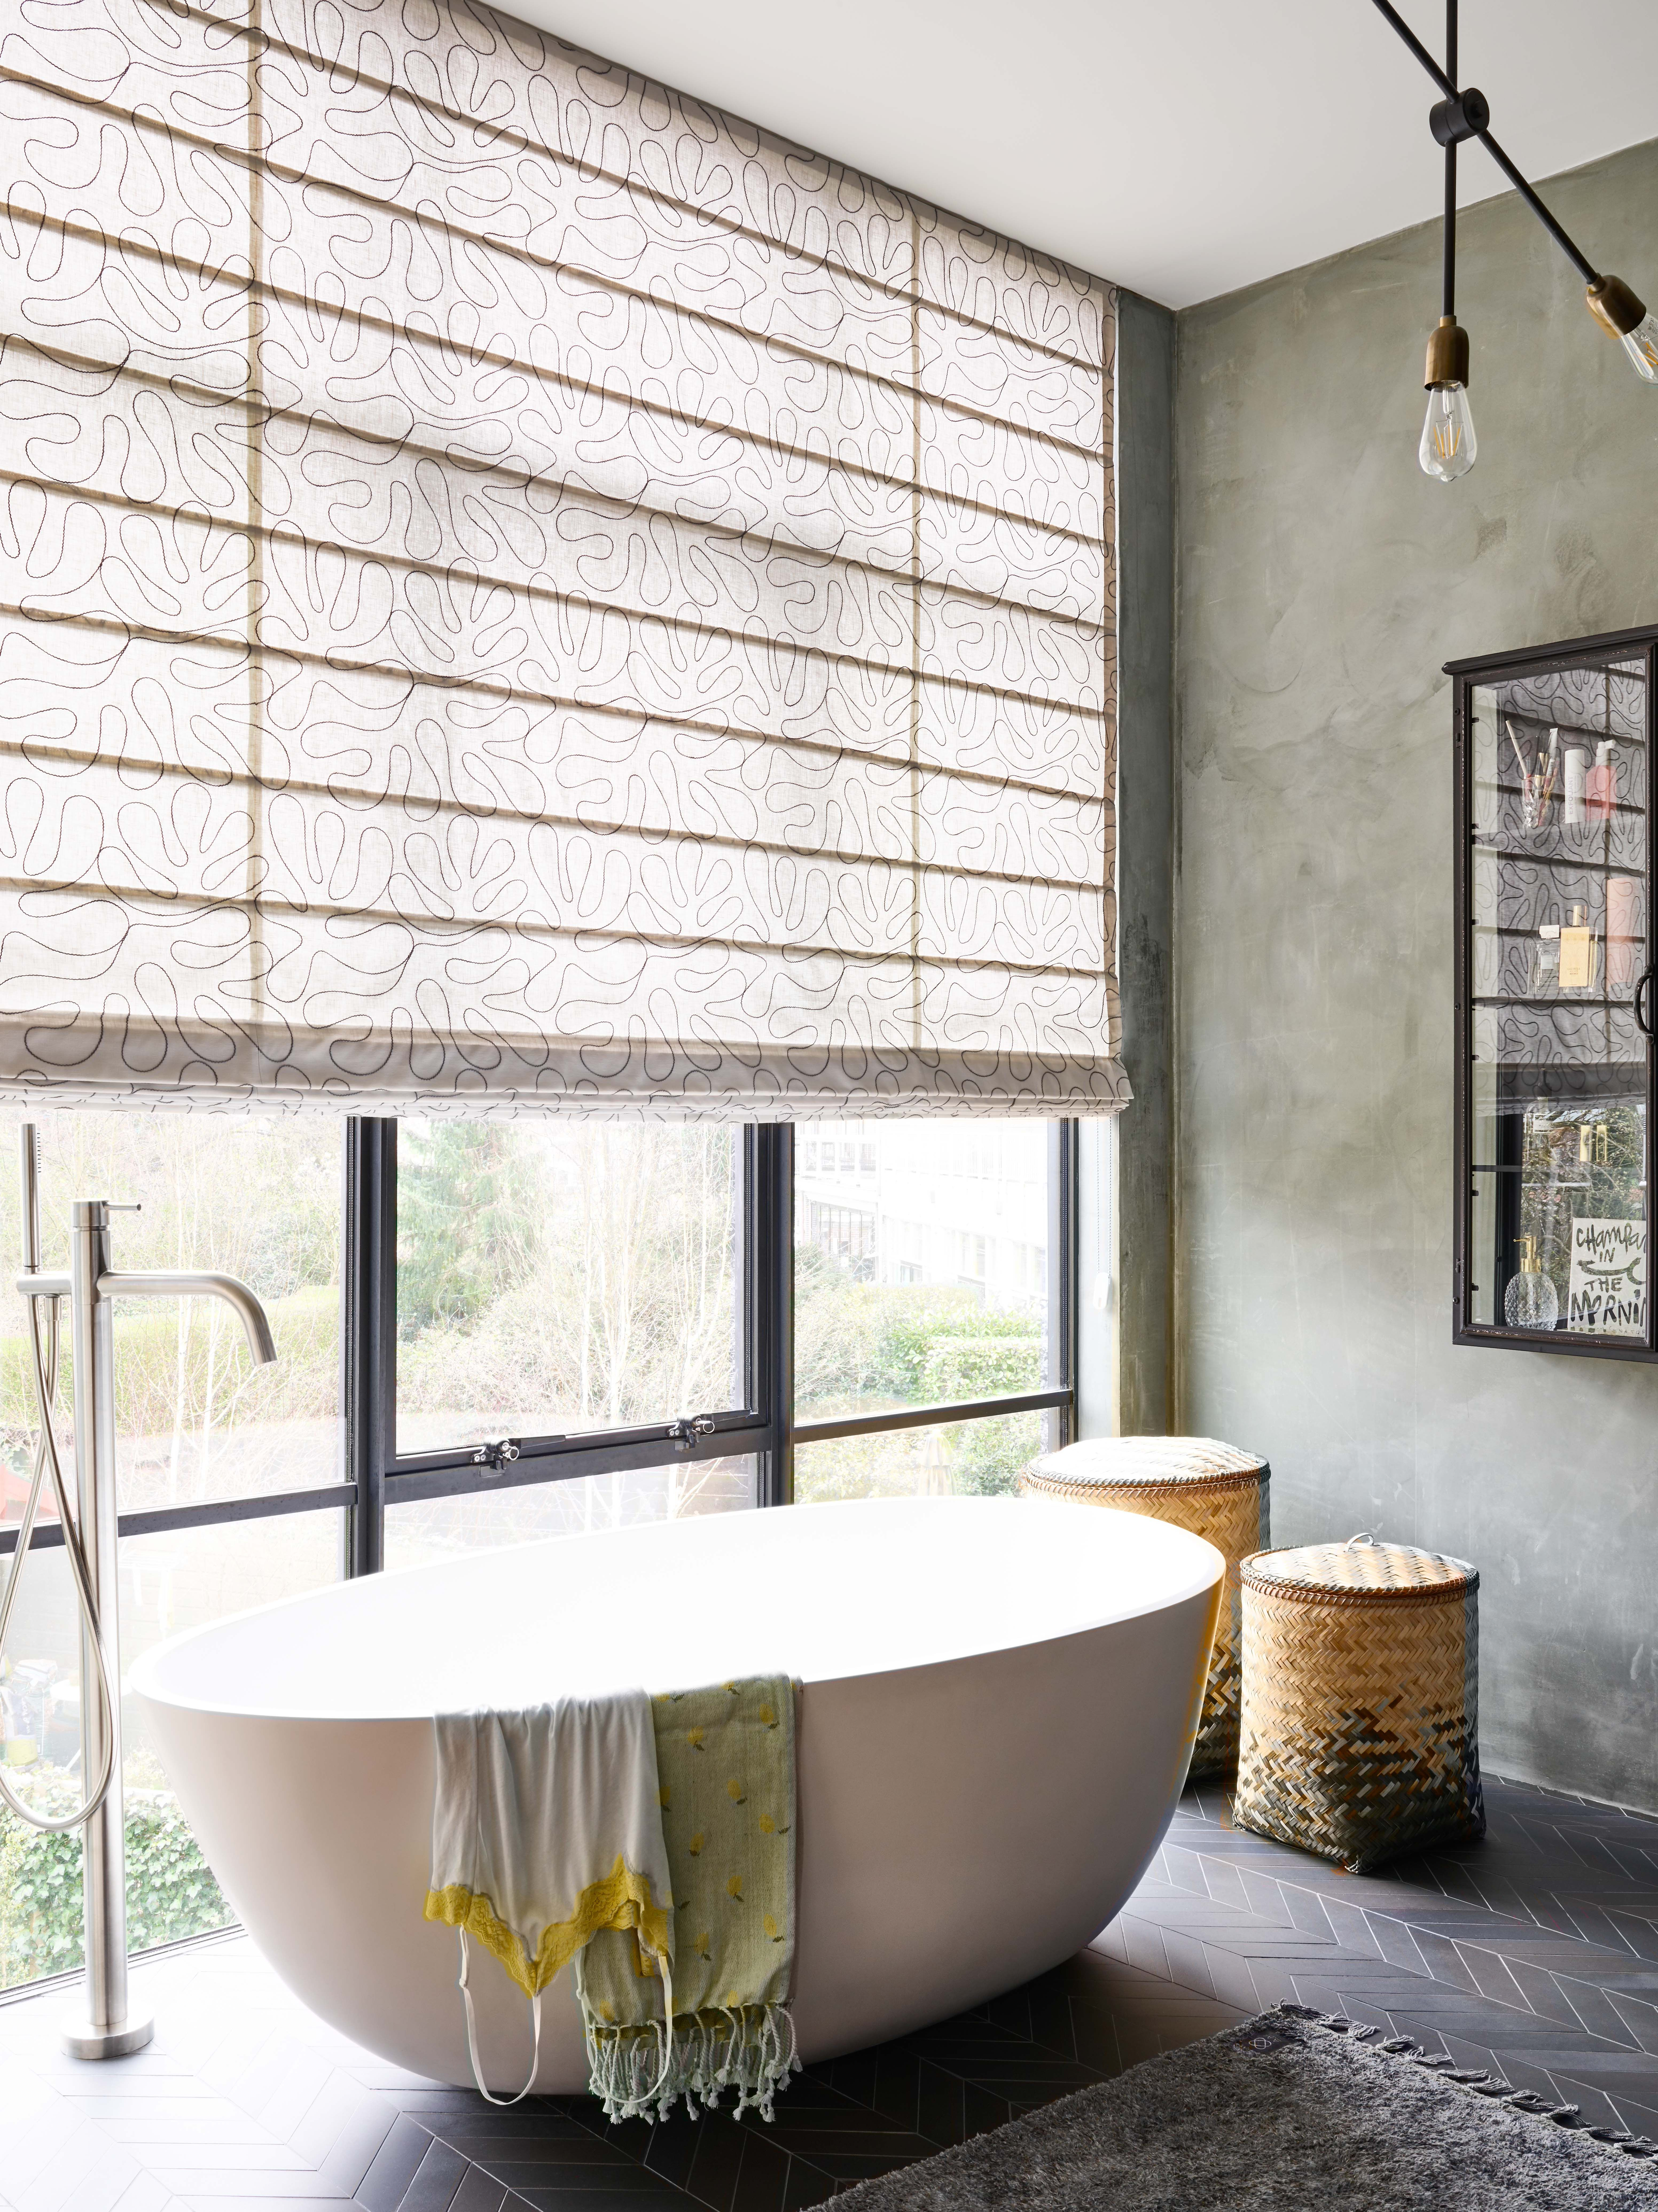 Create An Inviting Look Instantly In Your Bathroom With Beautiful Roman Shades Learn More Budget Blinds Custom Roman Shades Roman Shades [ jpg ]